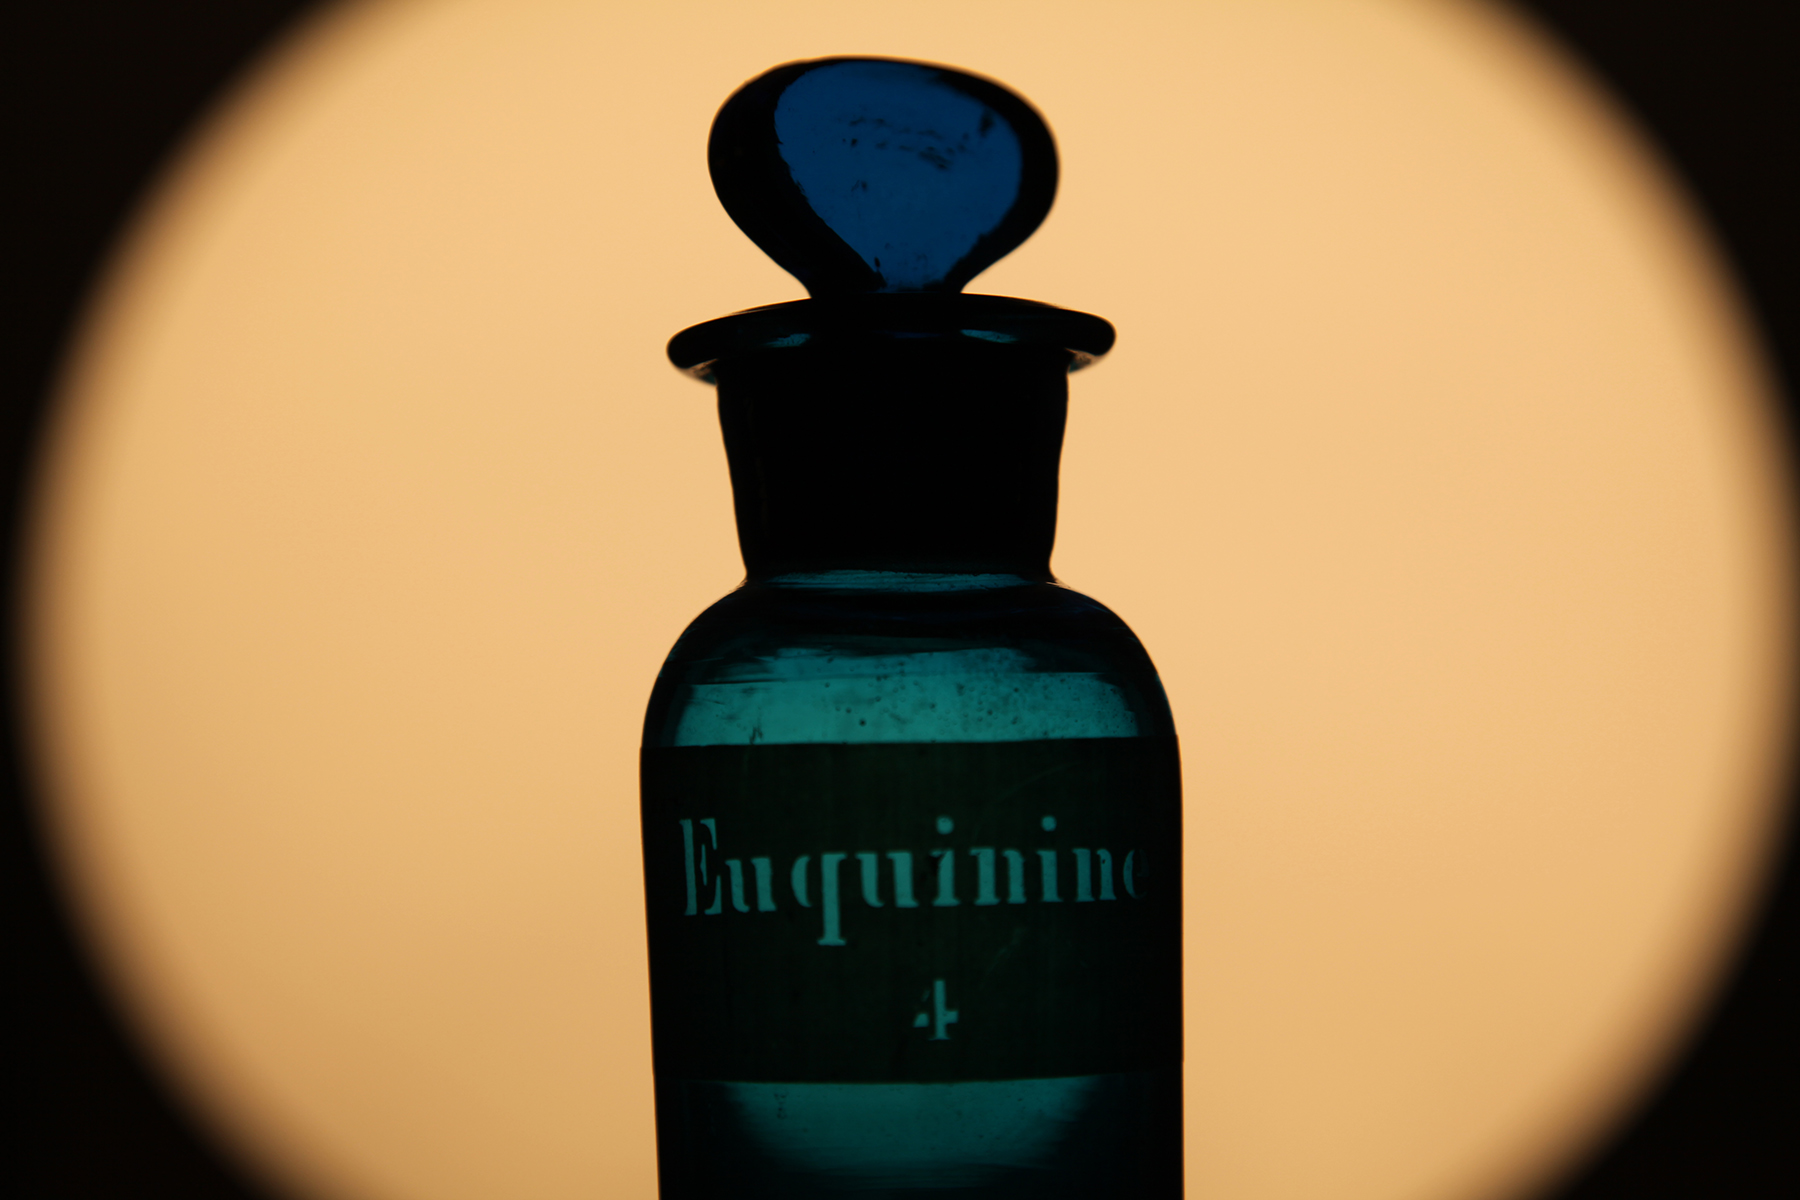 Bottle of Euquinine. Photo: Quique Bassat